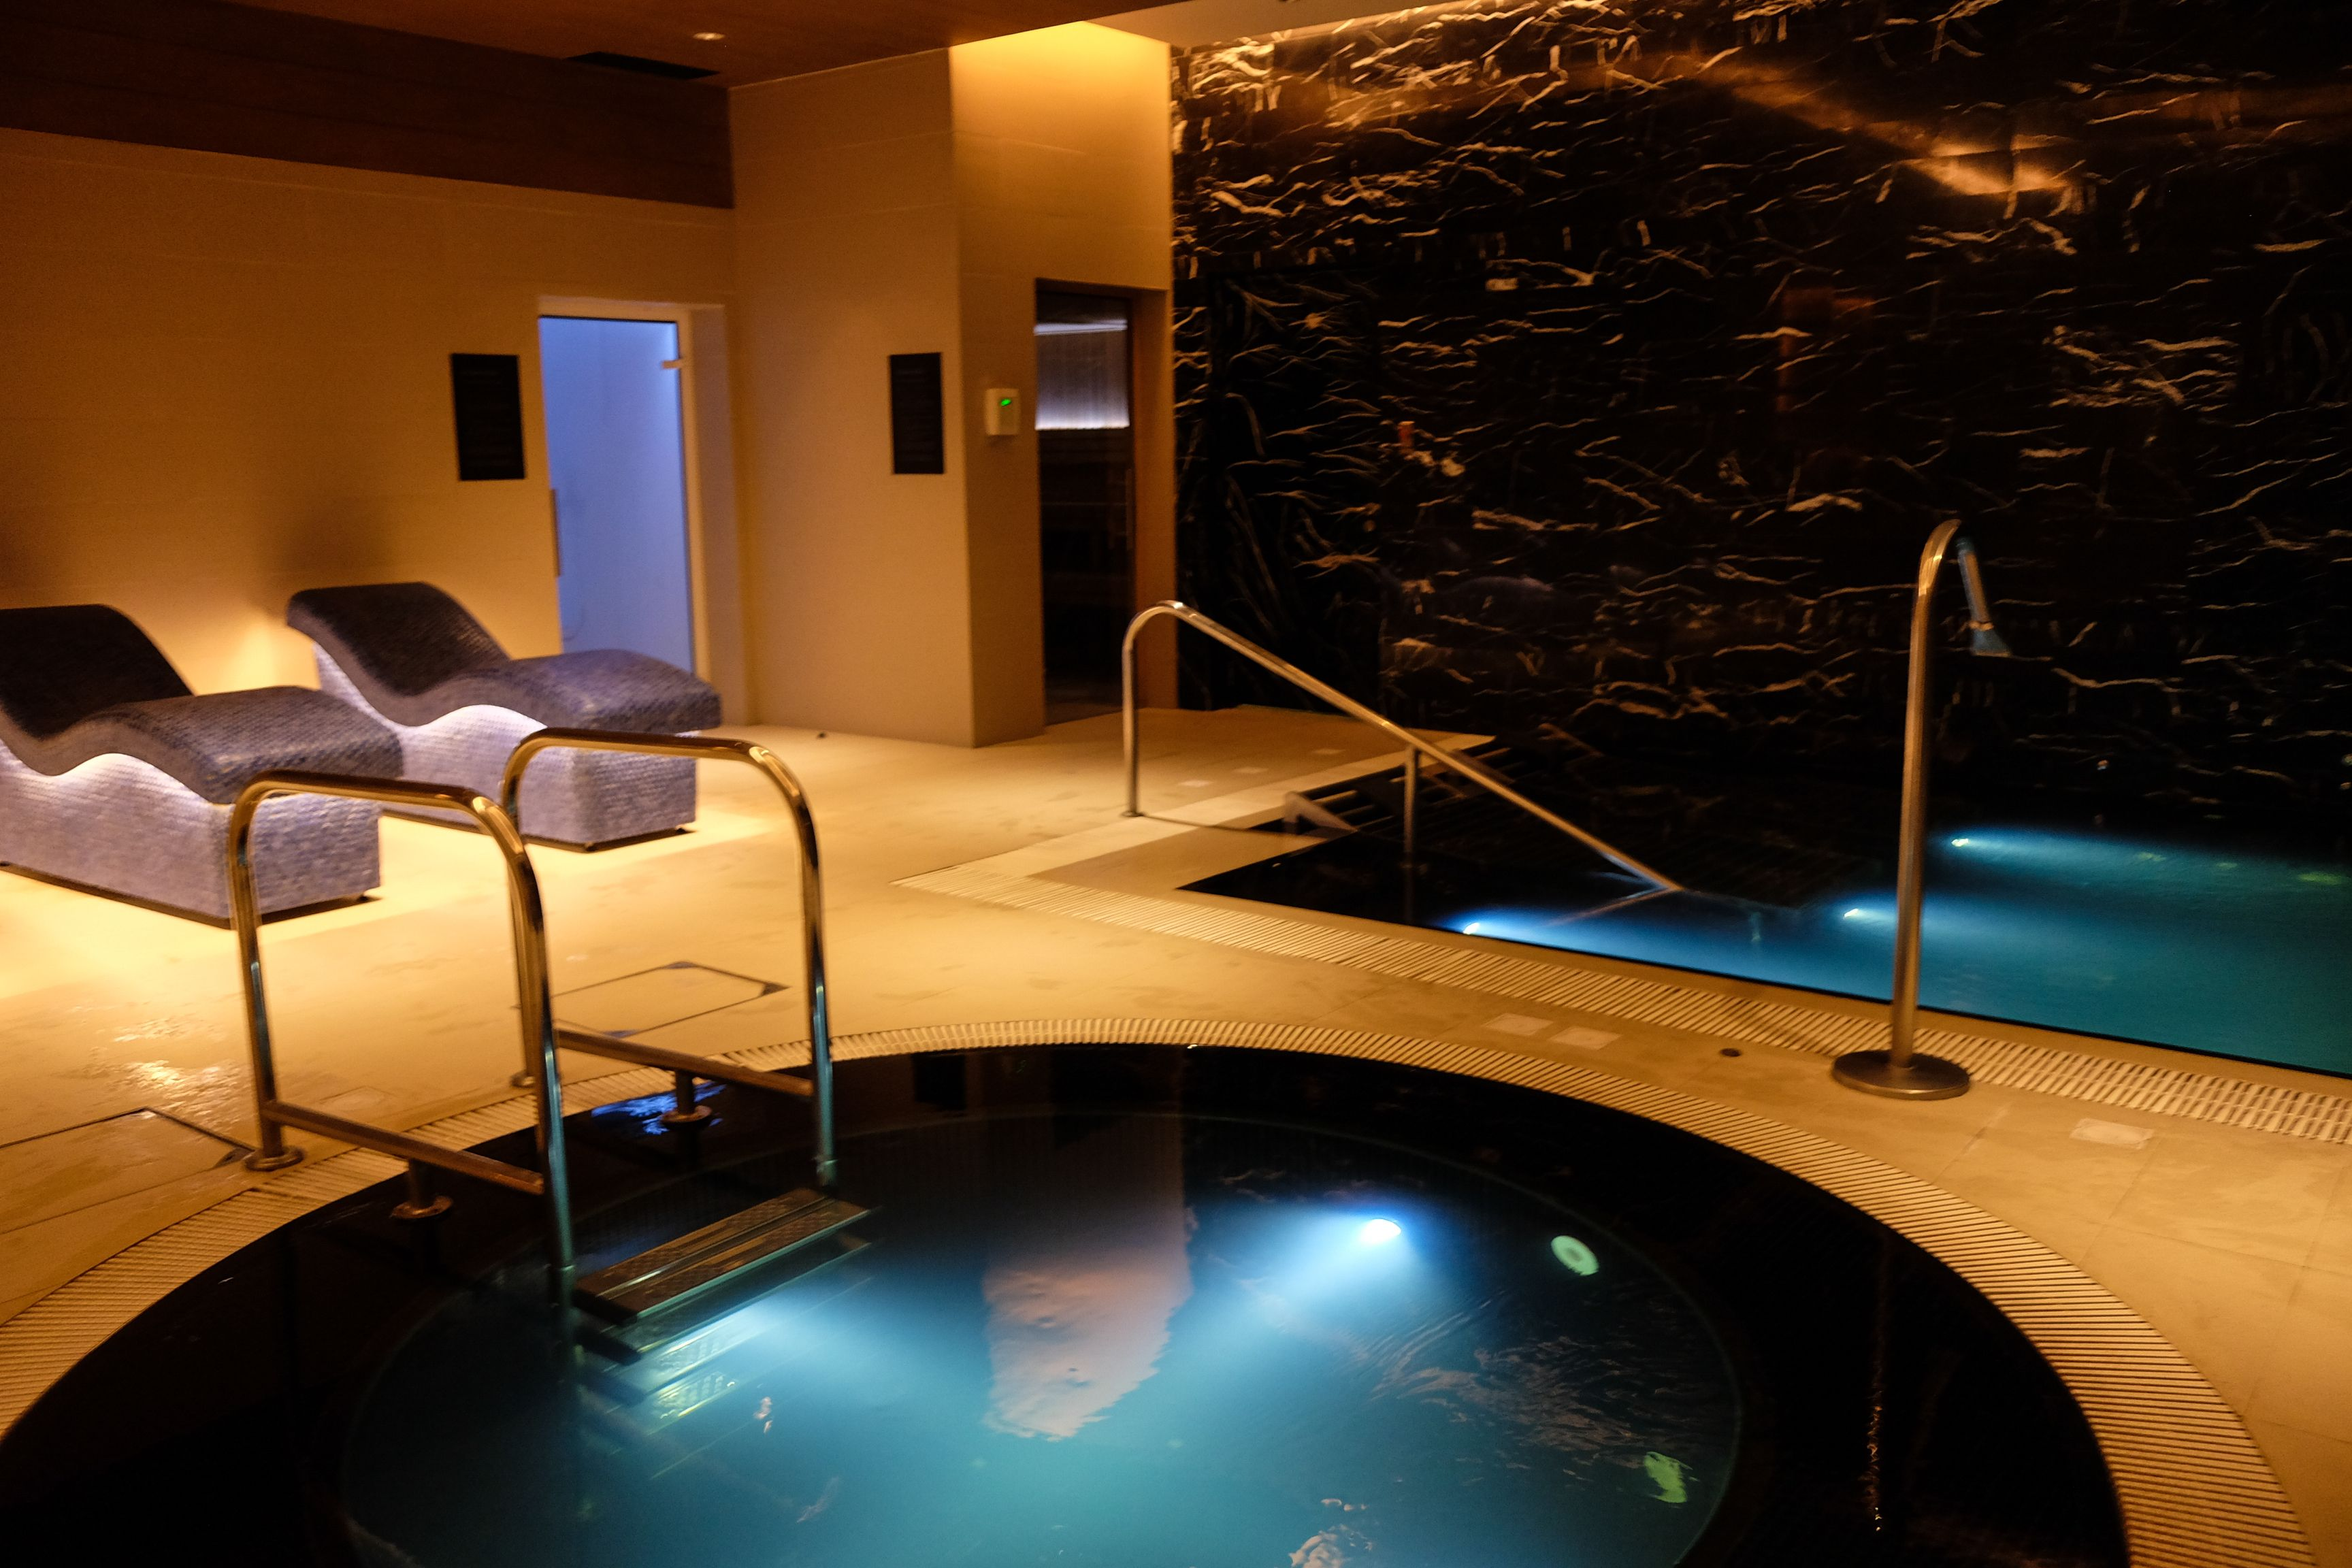 Ultimate relaxation at kerry sports steam room sauna jacuzzi and a cold plunge pool for Swimming pool and jacuzzi near me